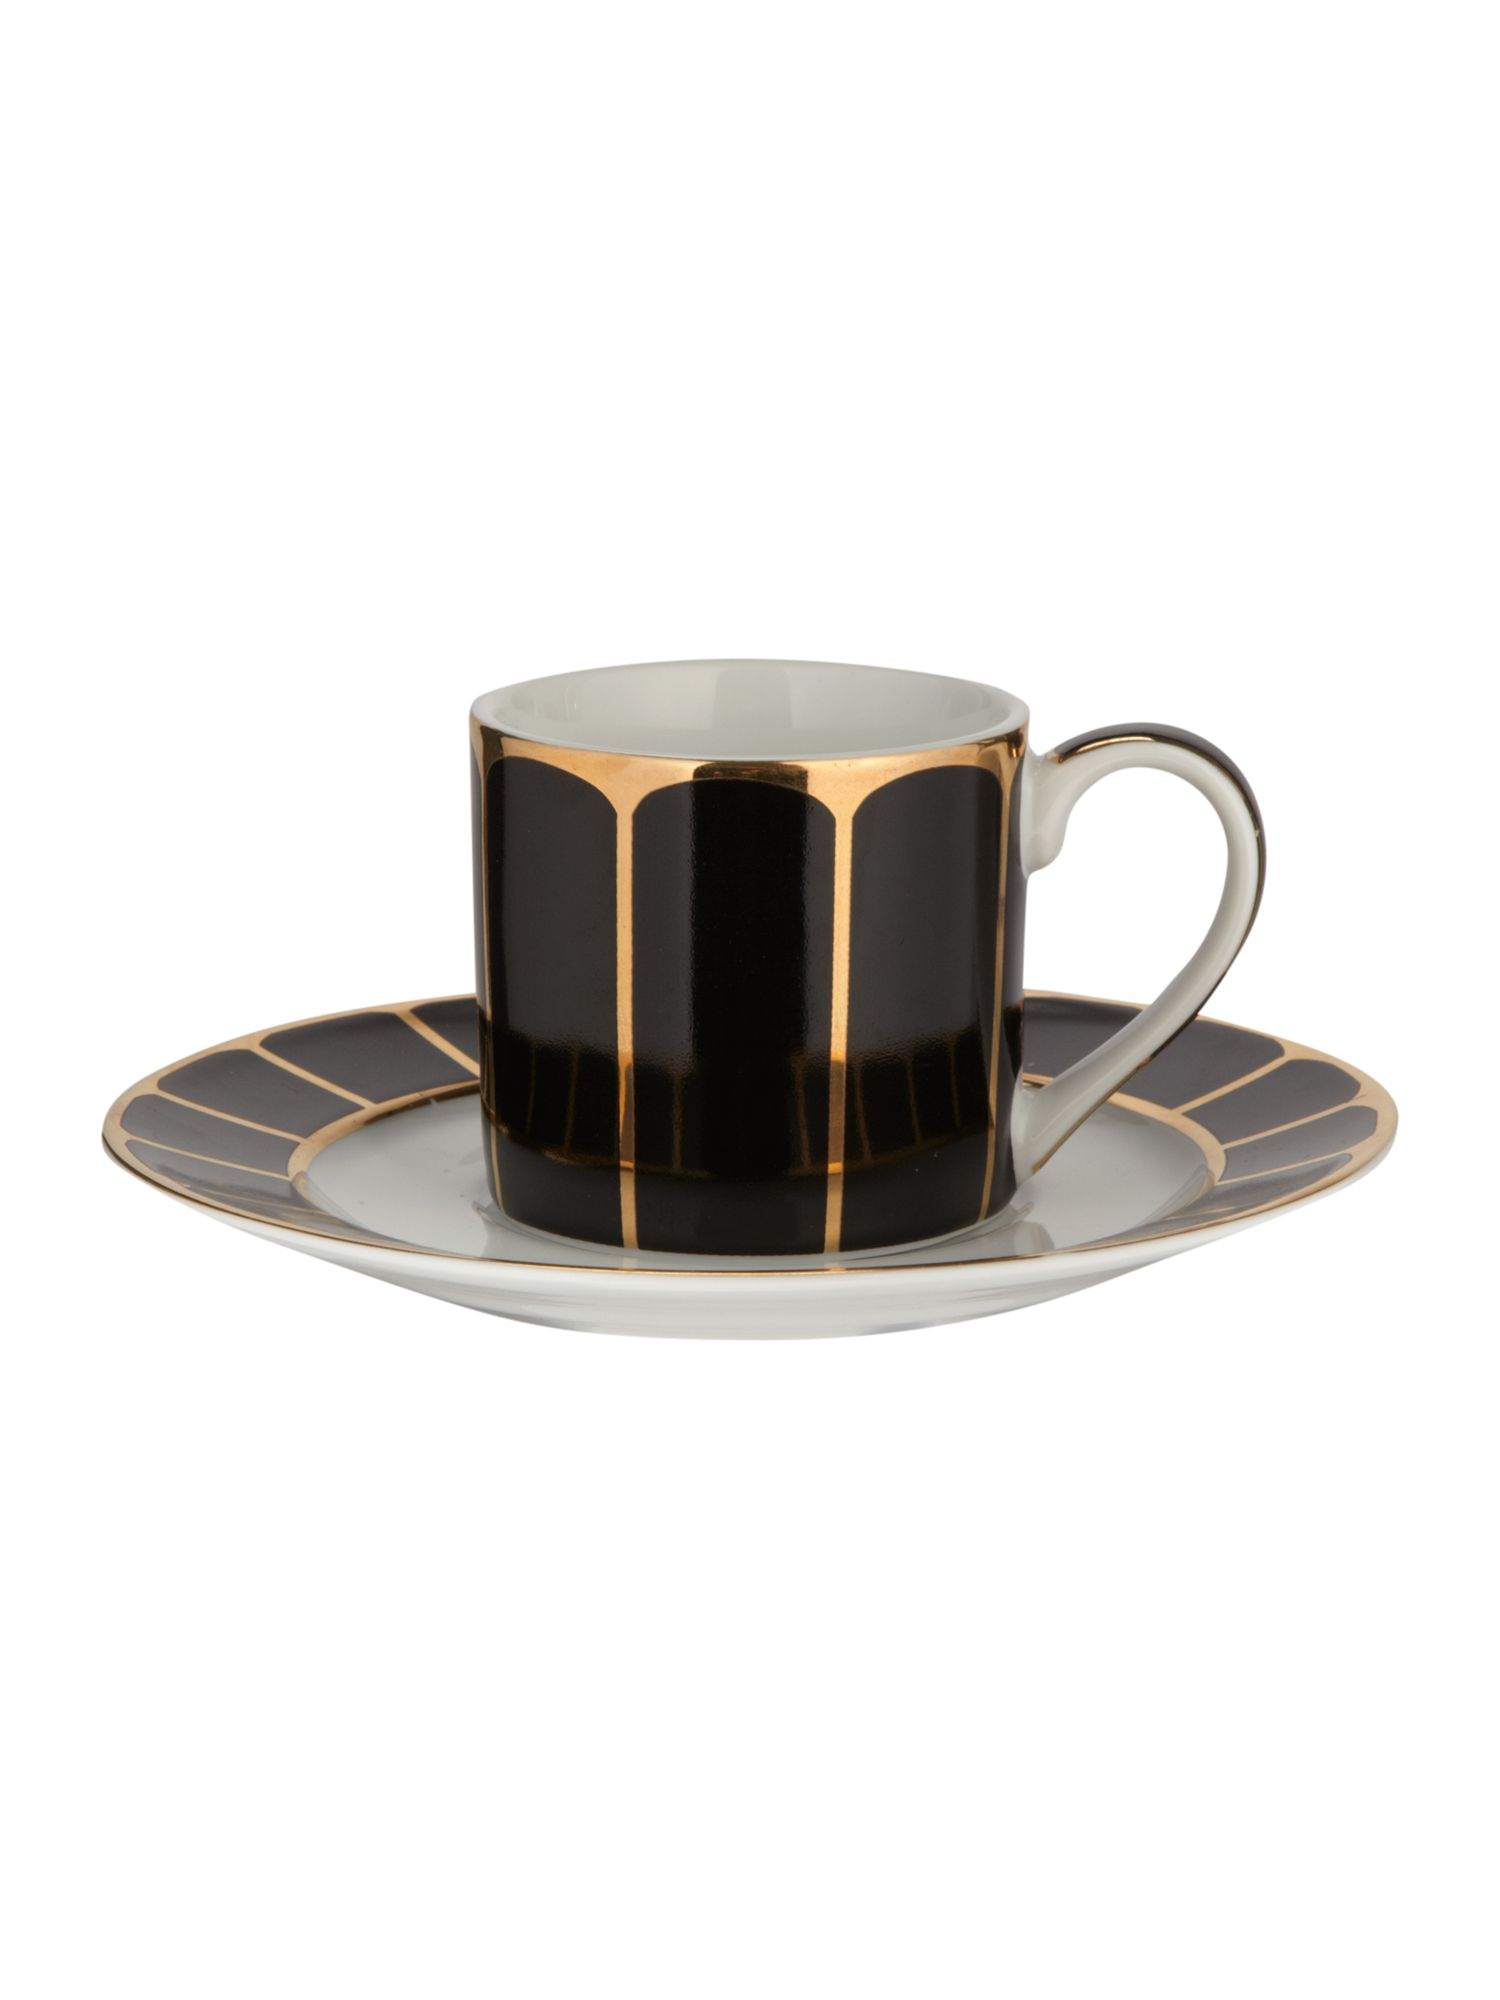 Biba Etienne Espresso CUP AND Saucer From House OF Fraser  : I1761526800120130111 from www.ebay.com.au size 1500 x 2000 jpeg 73kB